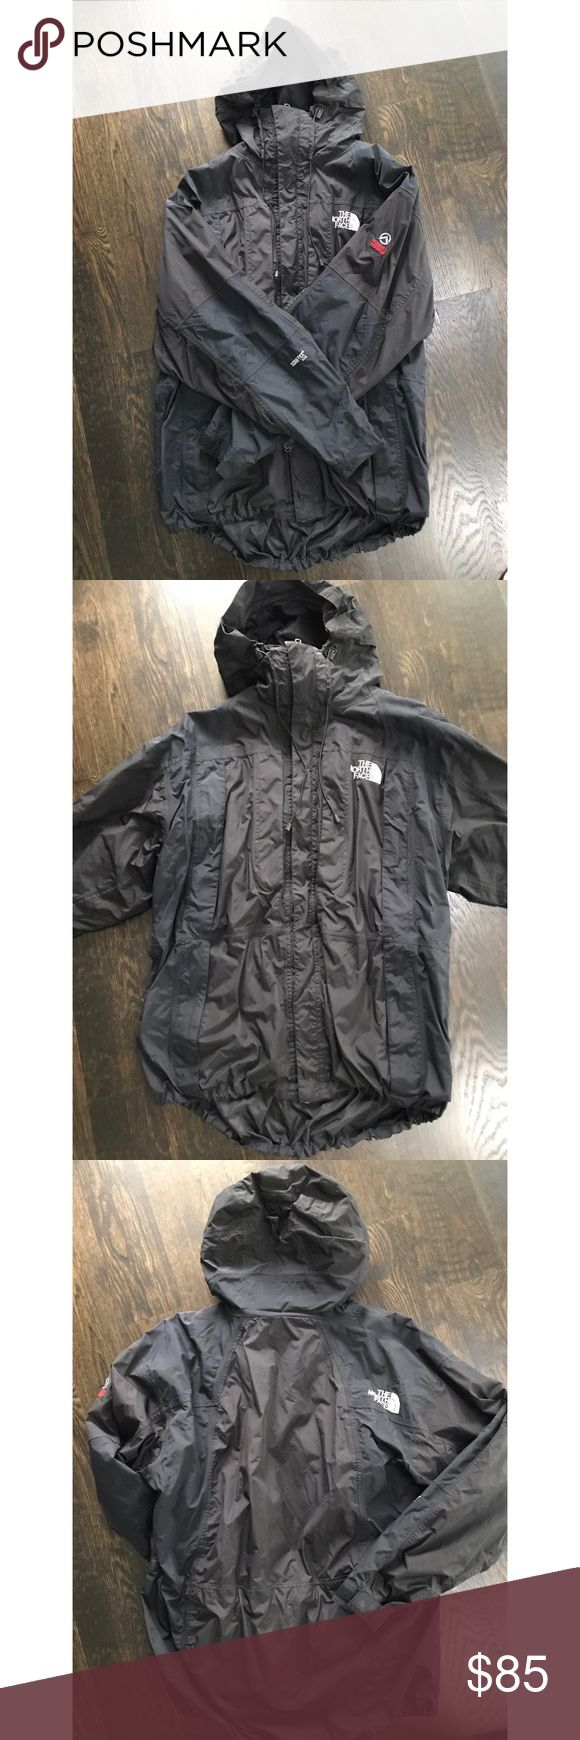 NORTH FACE Summit Series Snowboarding jacket. Very warm. In great condition. One of the pull strings are a little misshaped as shown in the photos. Removable fleece lining. North Face Jackets & Coats Ski & Snowboard